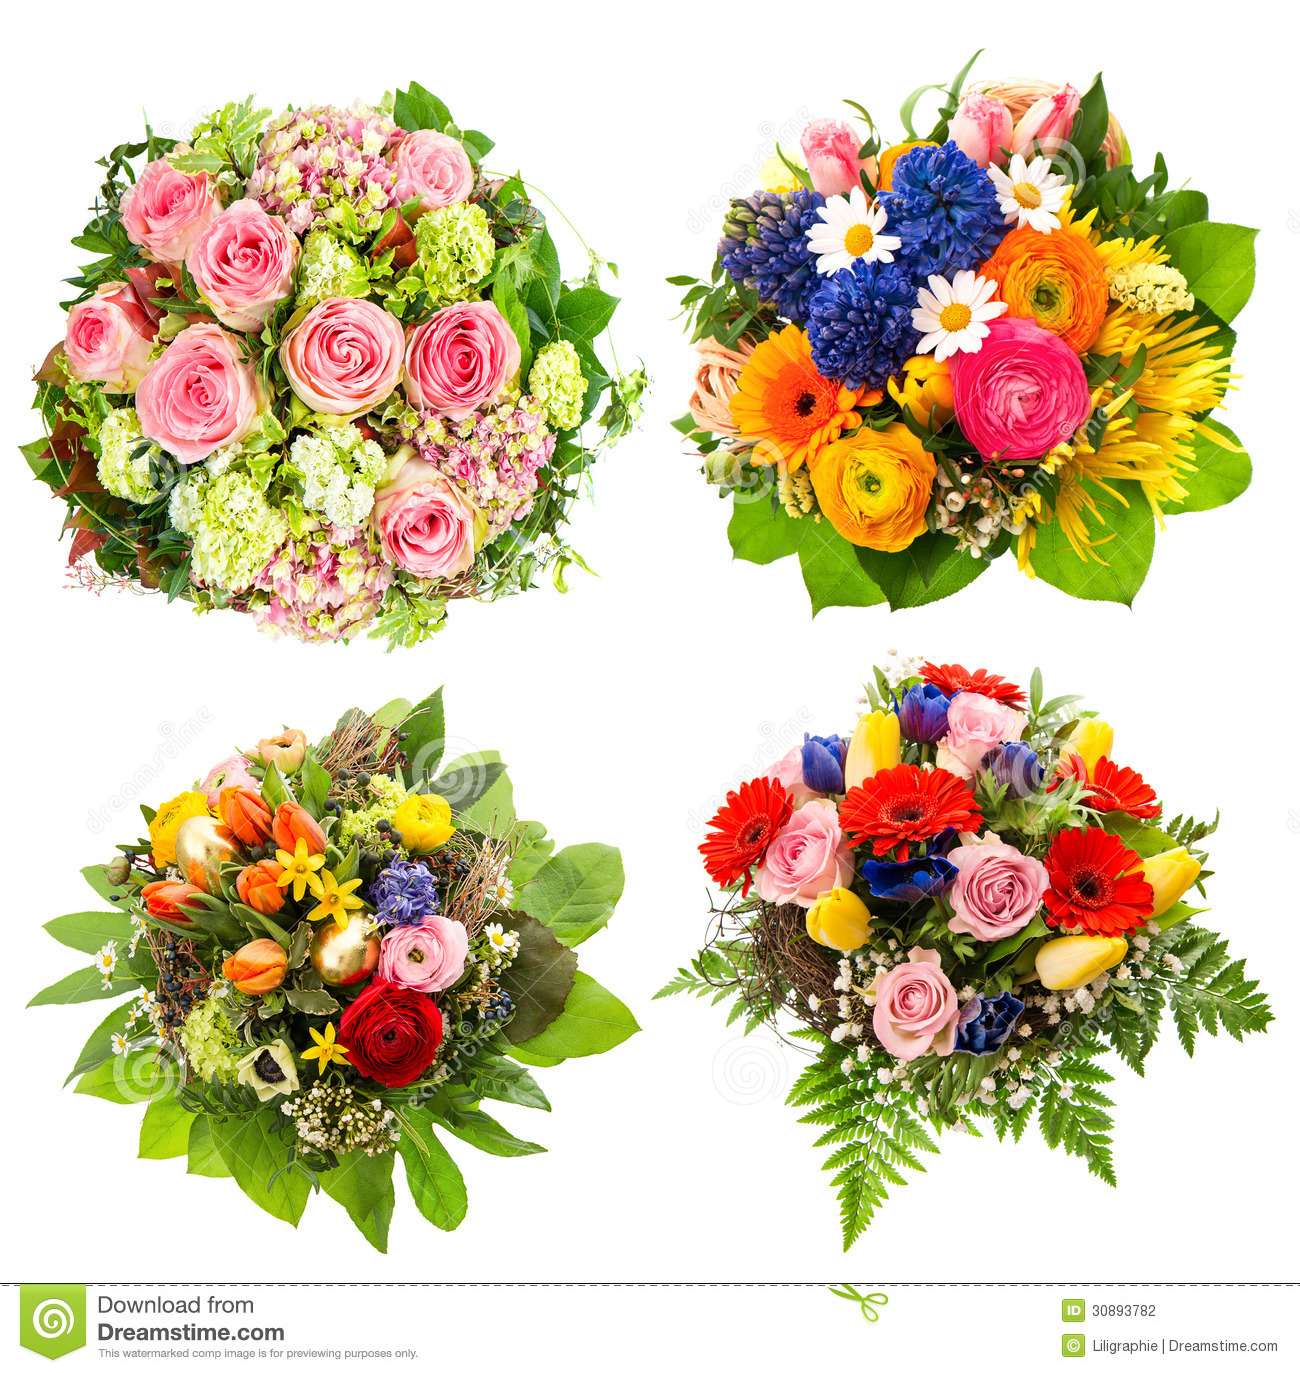 birthday flowers bouquet pictures. birthday flower bouquets, Beautiful flower